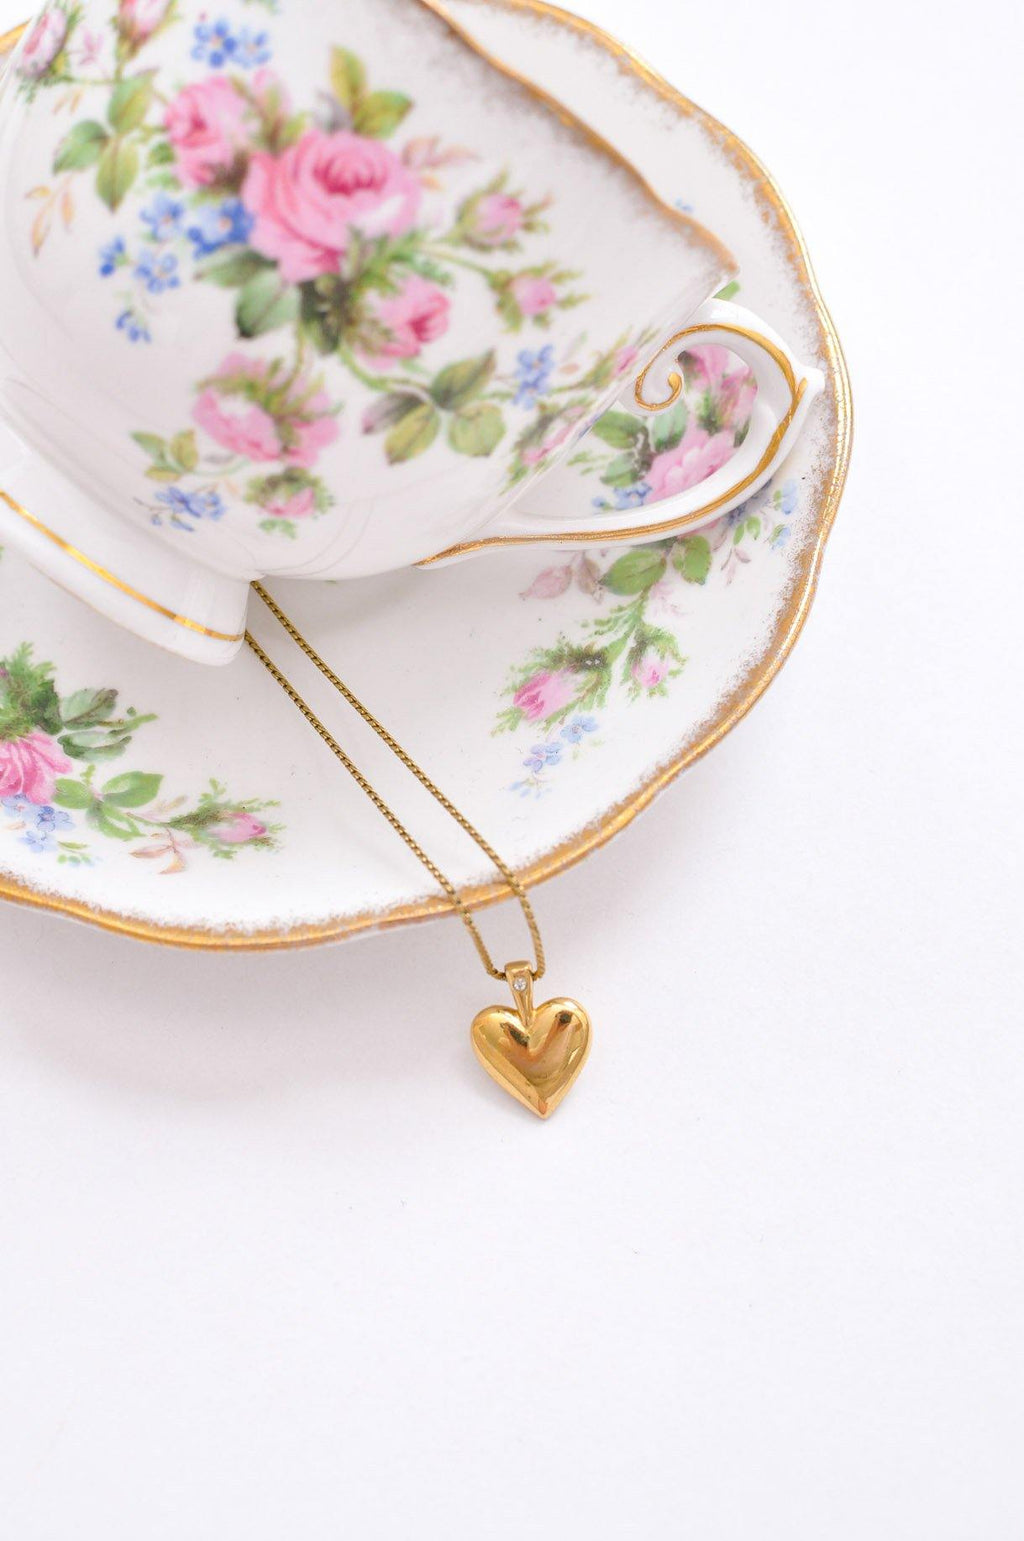 Dainty Heart Pendant Necklace